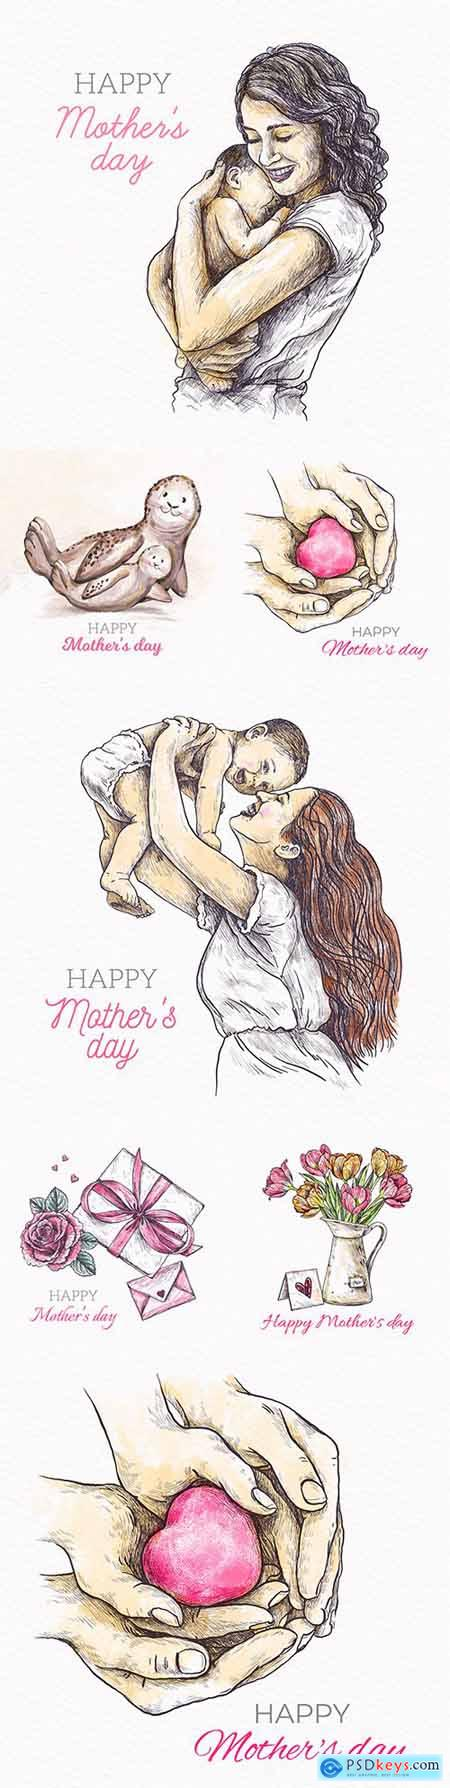 Mother s Day design with flowers watercolor illustrations